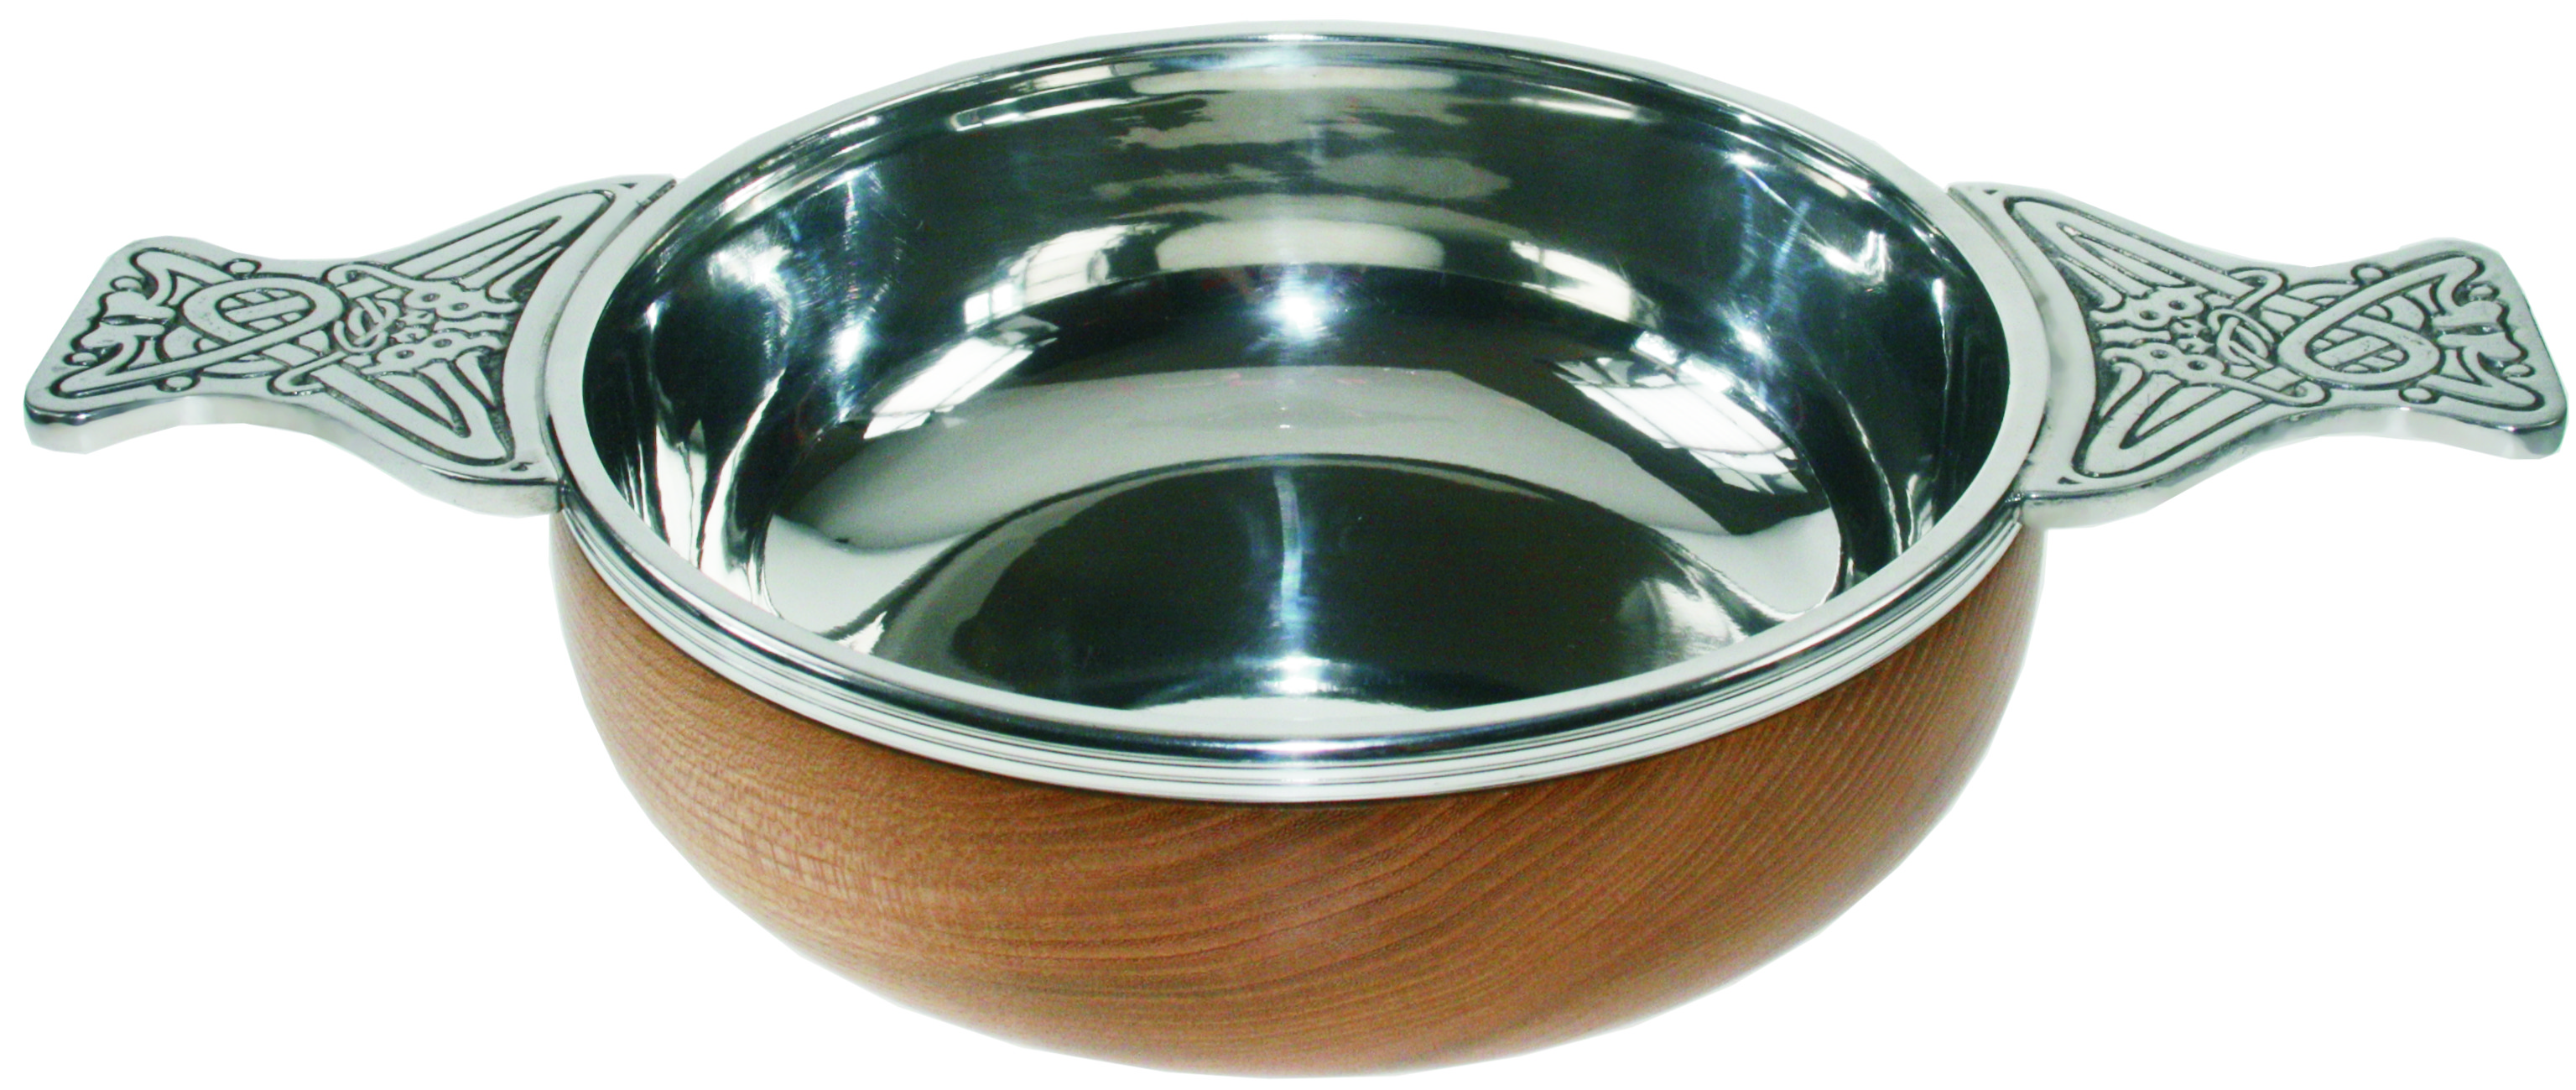 "Pewter and Wooden Base Quaich Bowl 17cm (6.75"")"